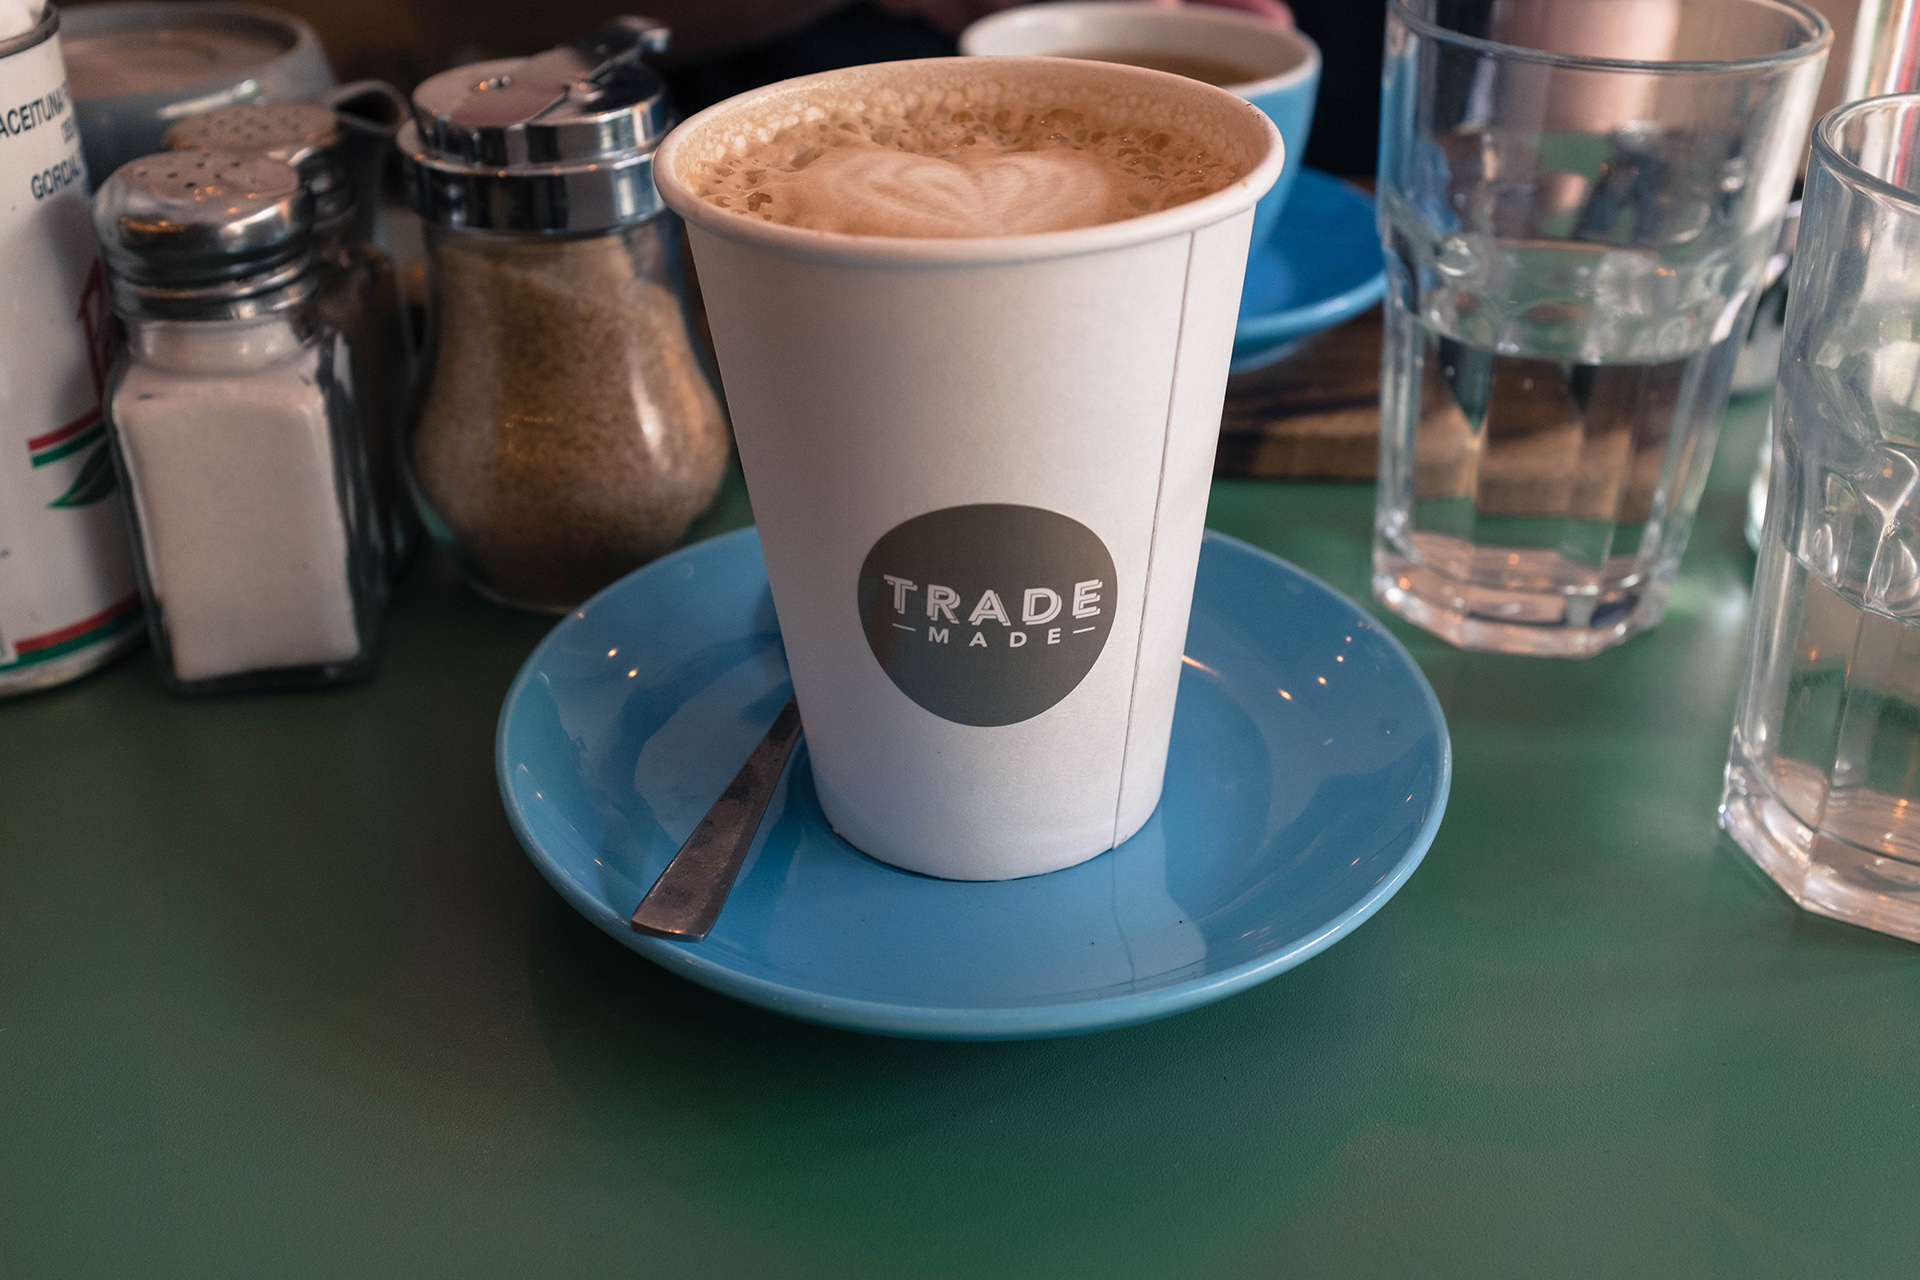 trade cafe london cup